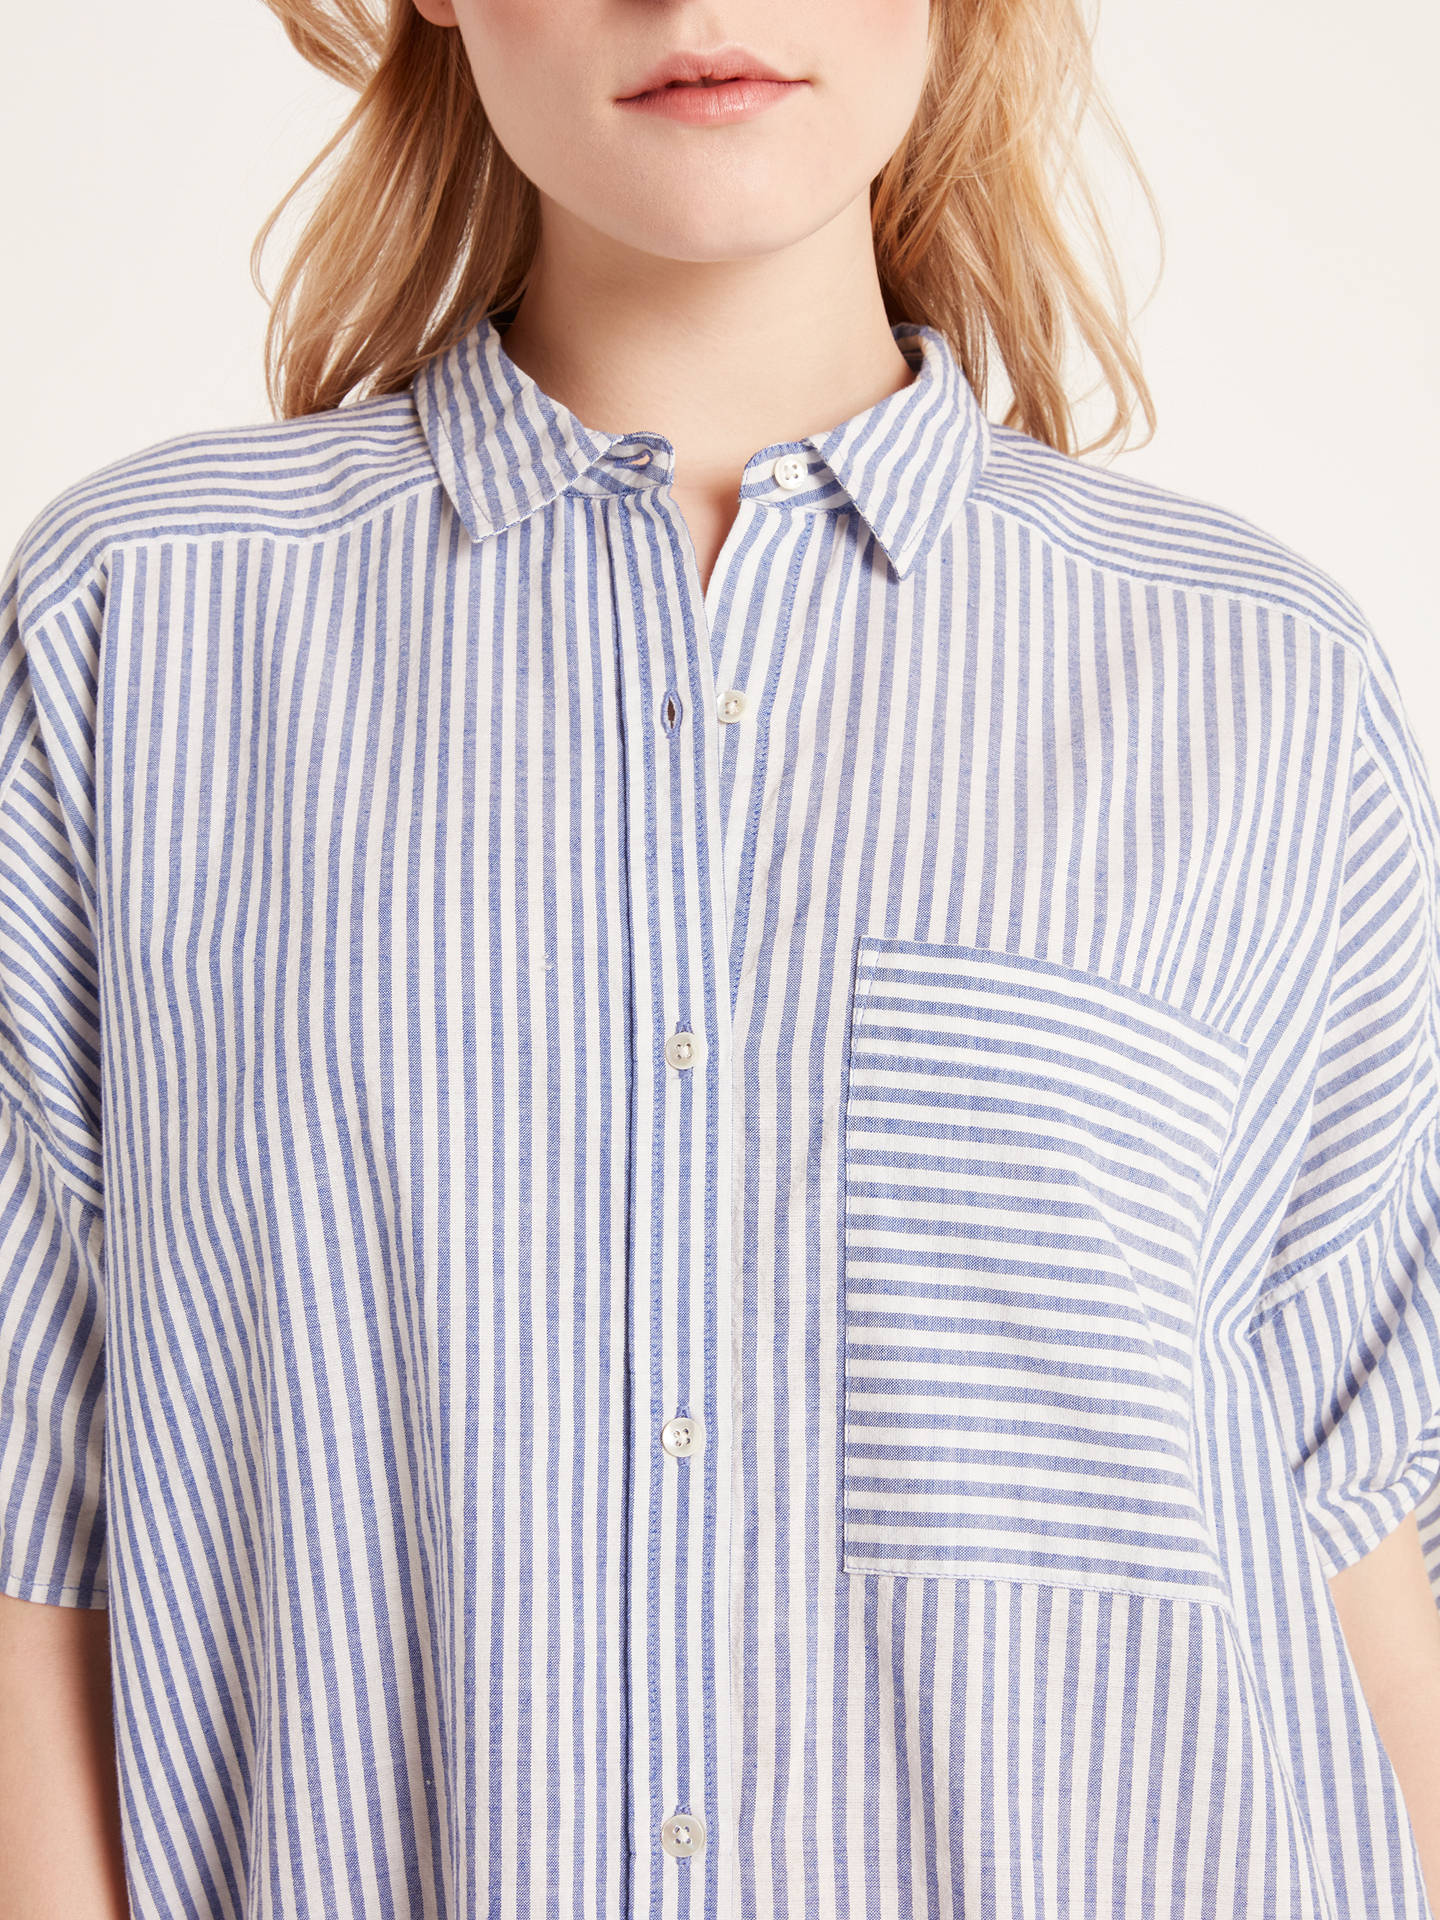 BuyAND/OR Stripe Long Shirt Dress, Blue/White, S-M Online at johnlewis.com